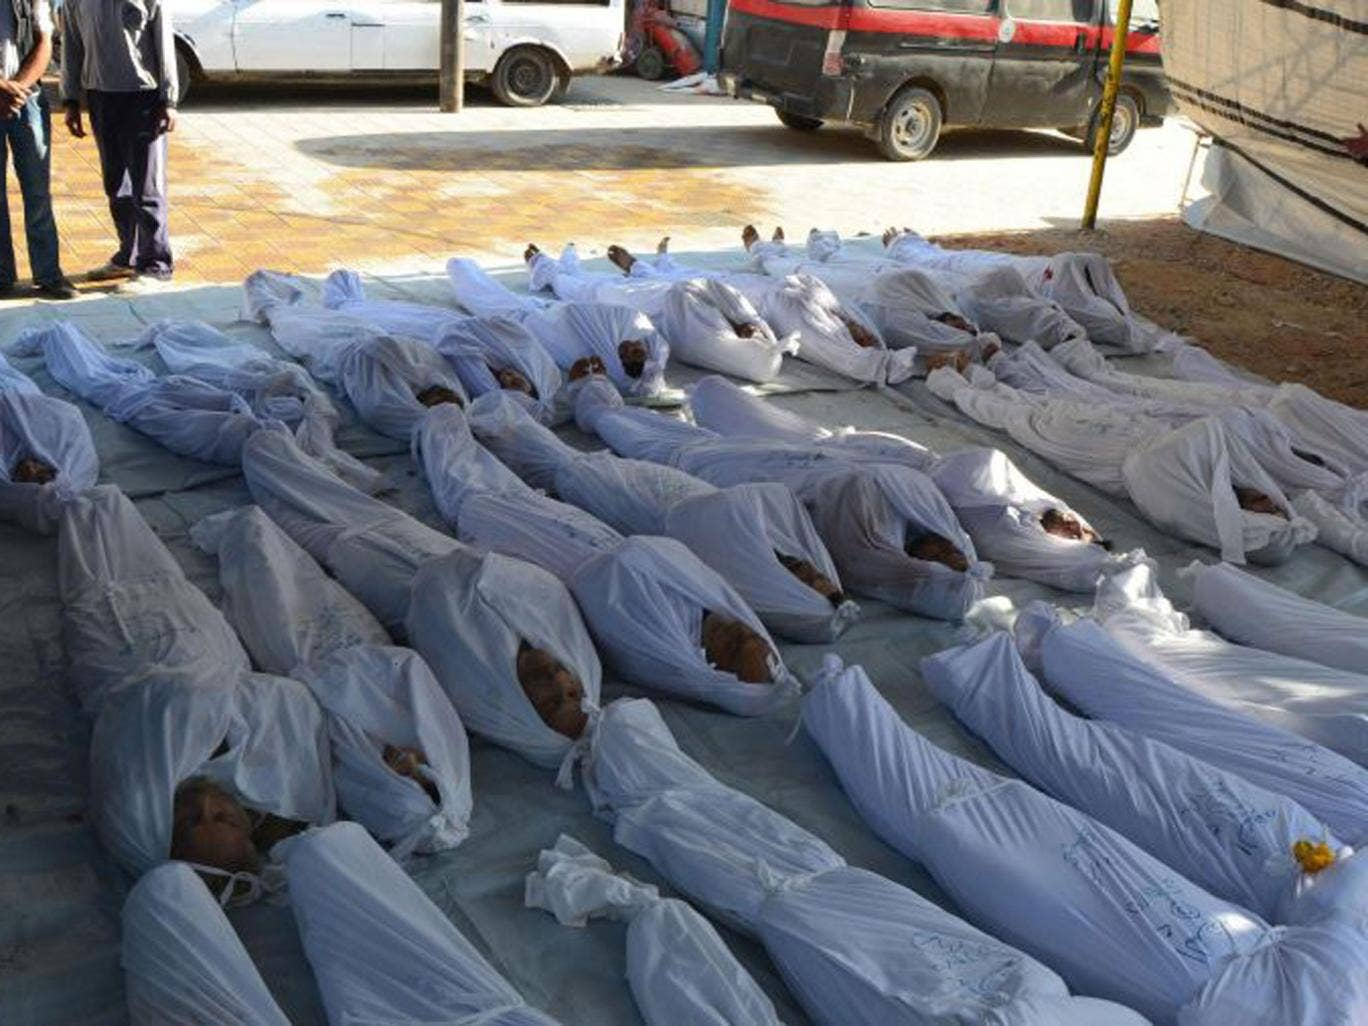 Victims of the Ghouta attack lie in a makeshift morgue